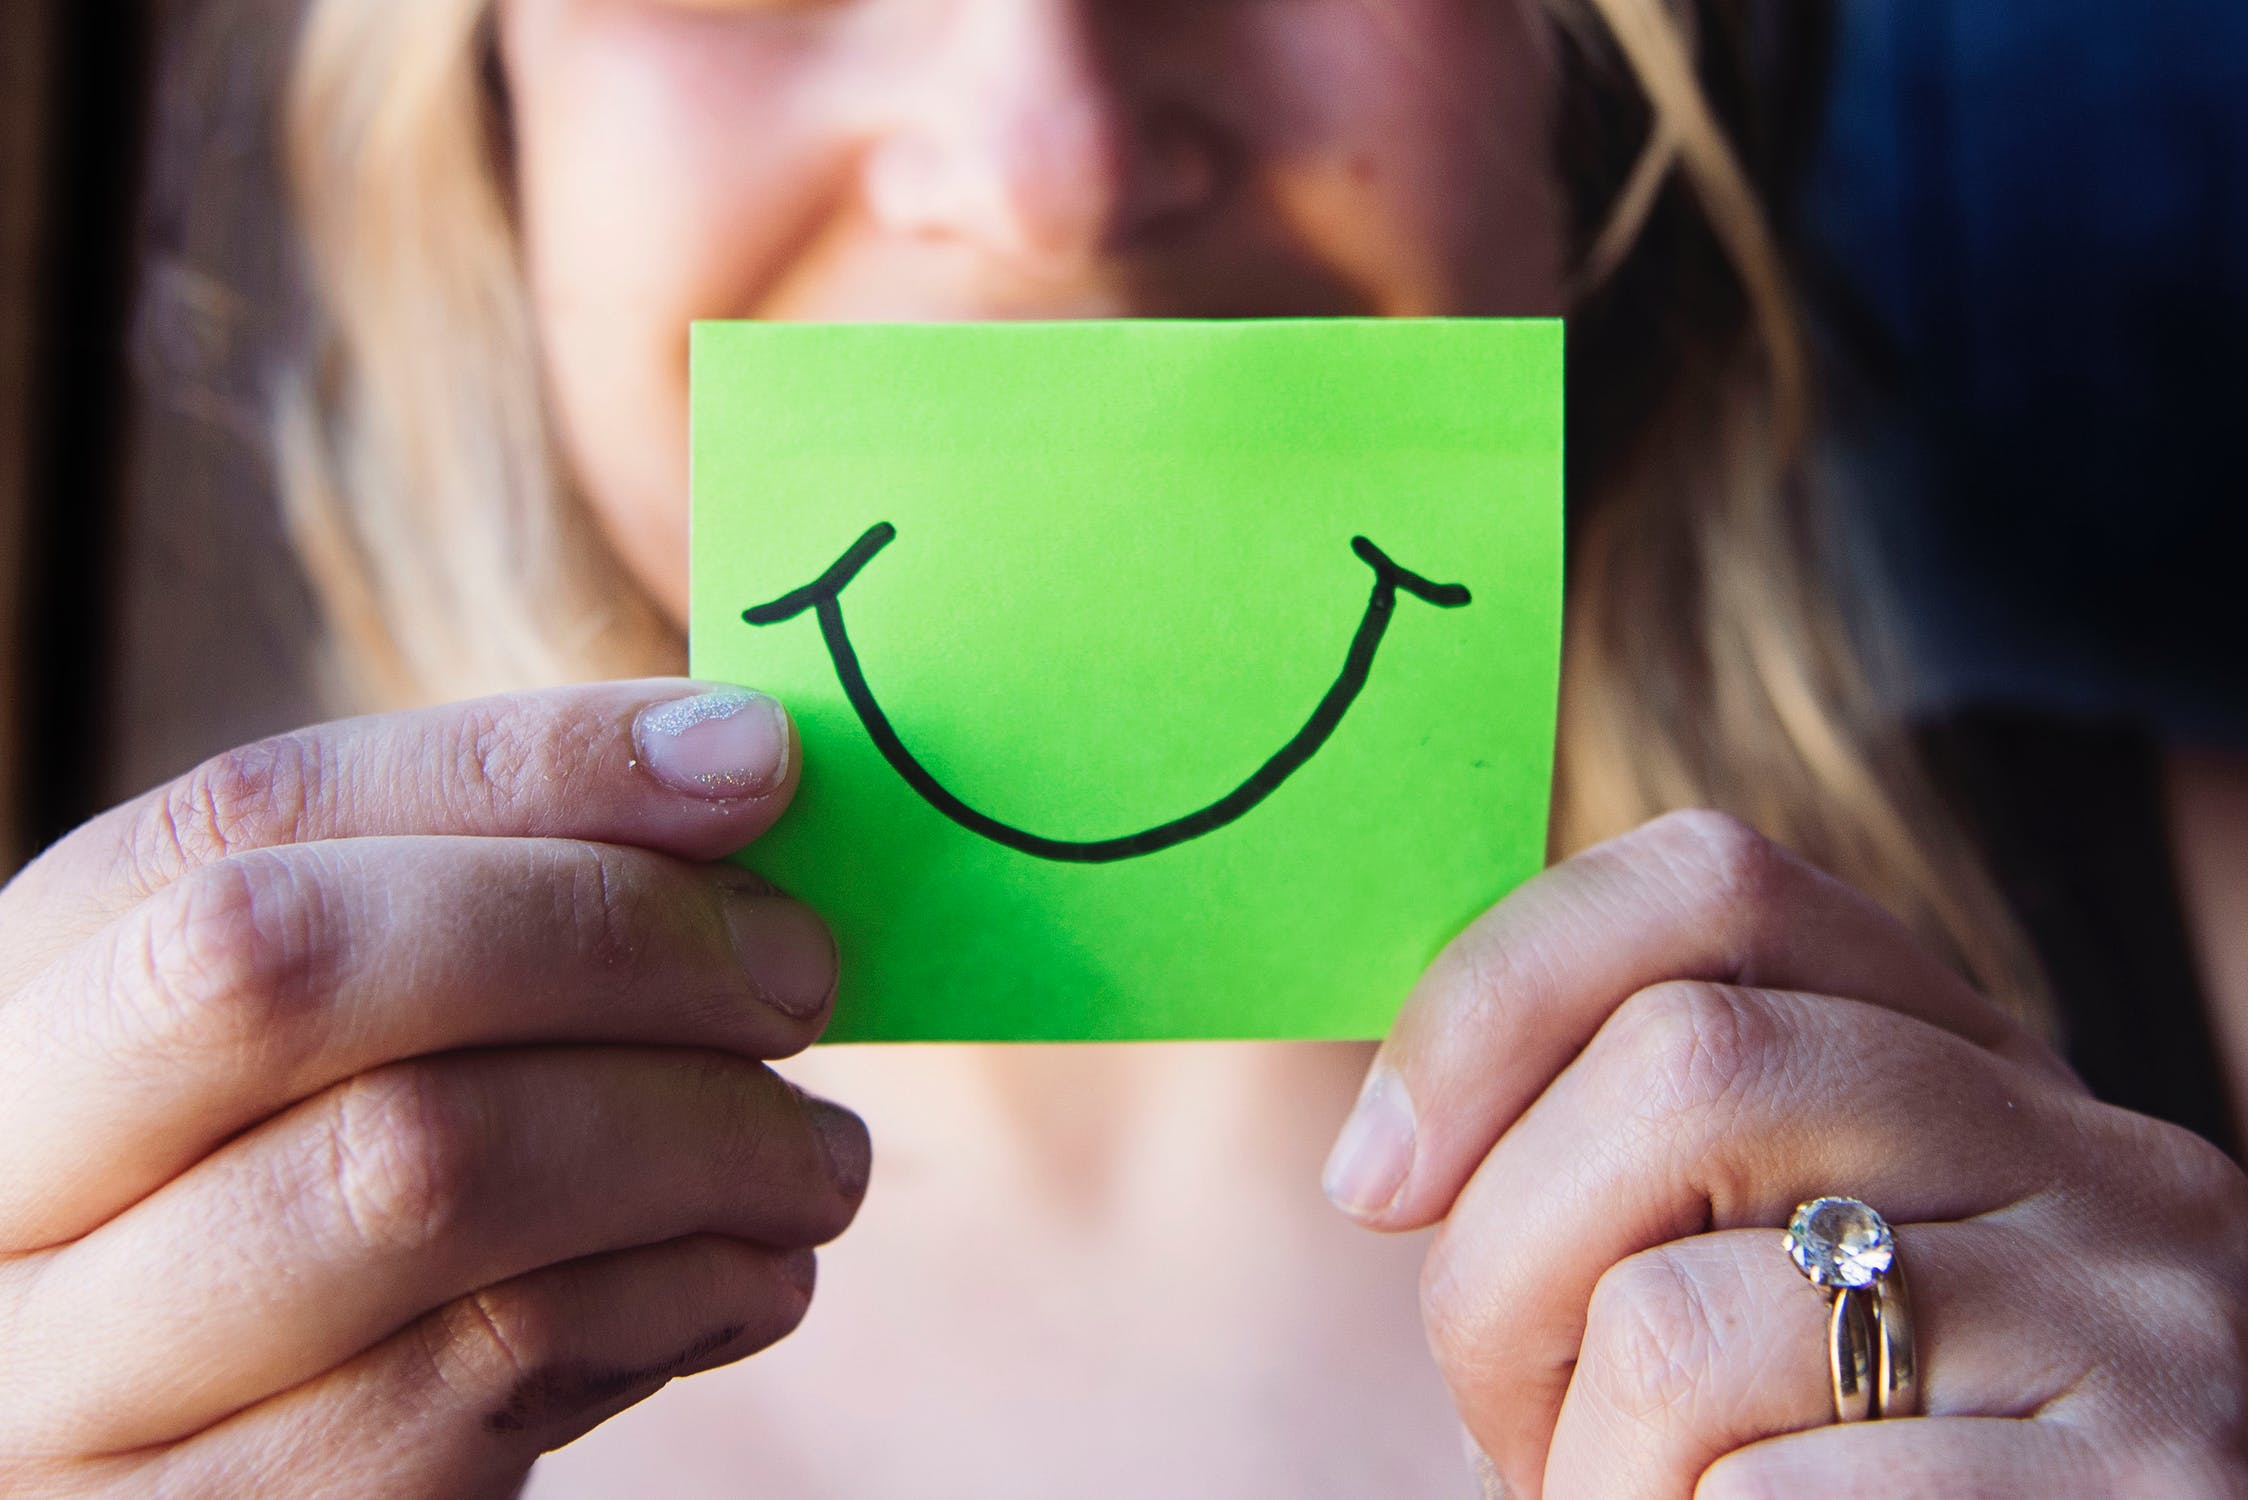 A woman holding a sticky note with a cartoon smile on it in front of her mouth